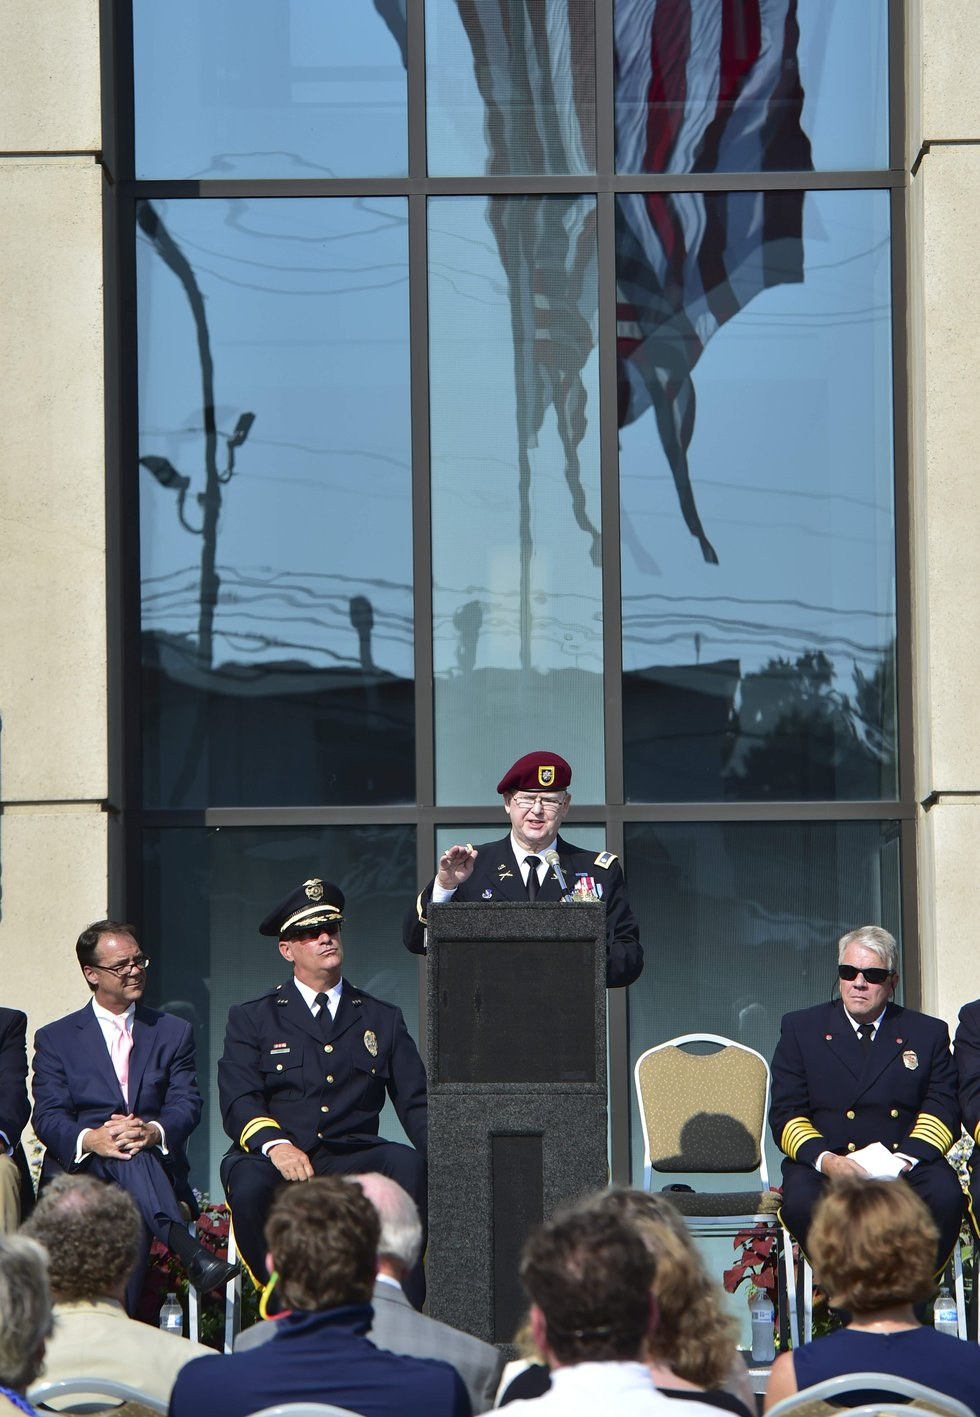 190911_PatriotDay911EN02.JPG